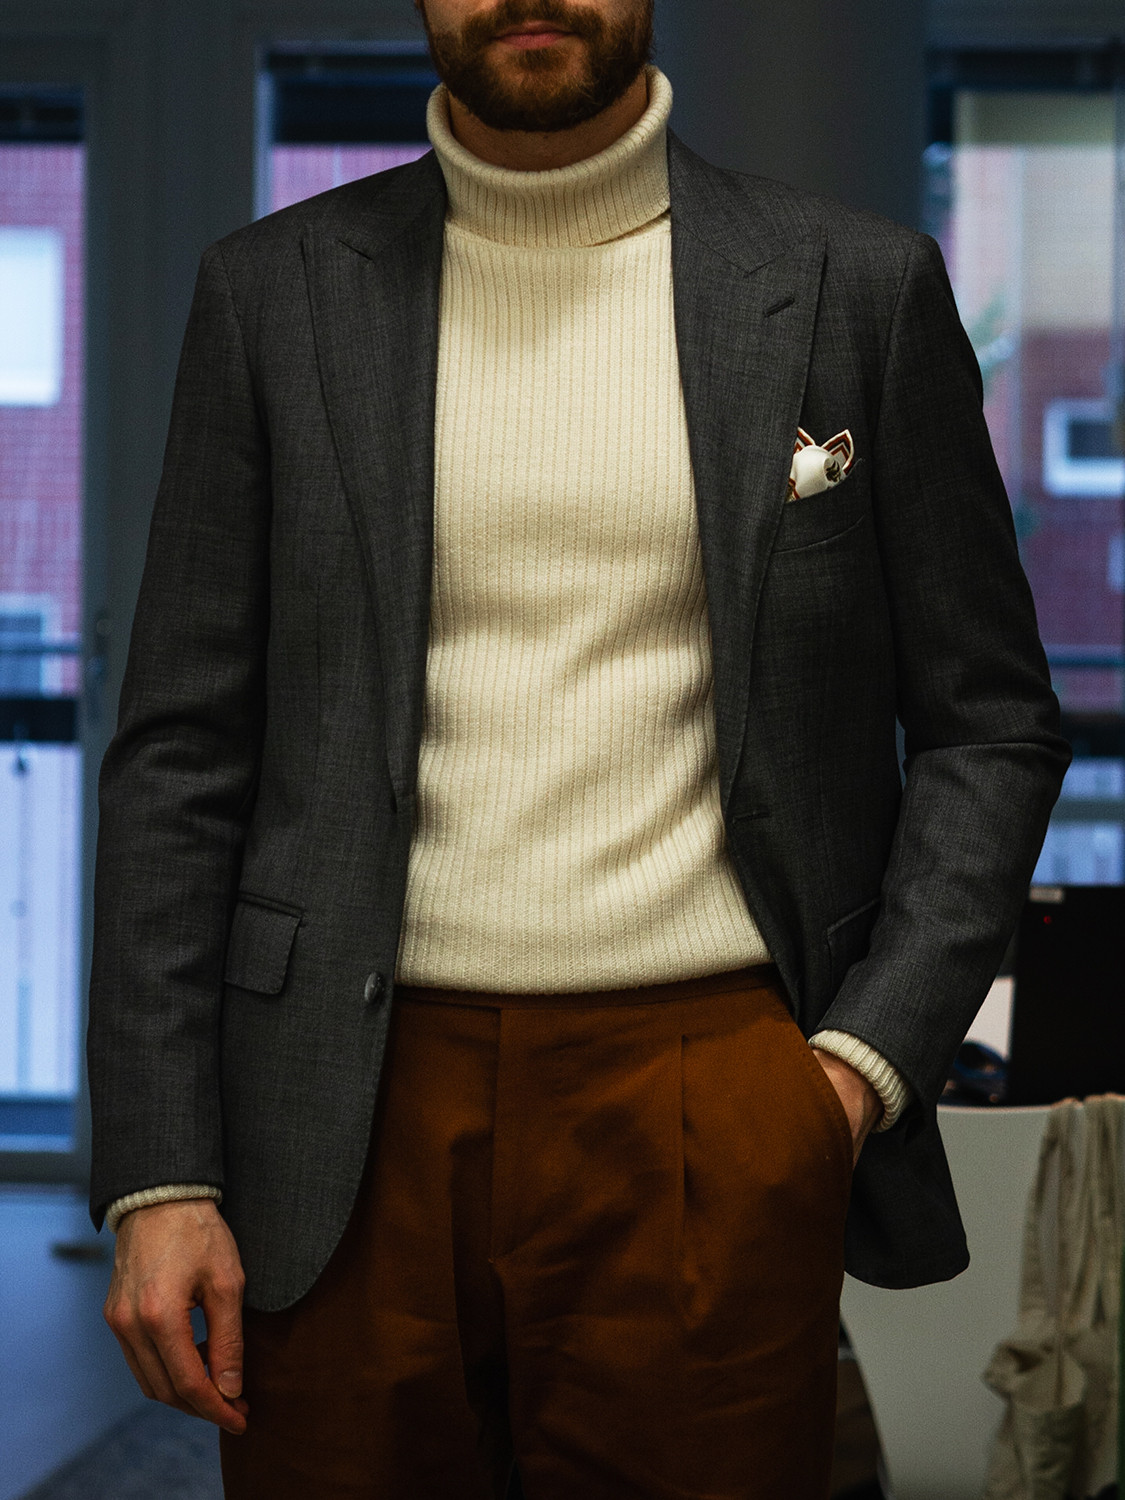 Men's outfit idea for 2021 with grey plain blazer, brown plain formal trousers, brown oxford / derby shoes. Suitable for autumn and winter.